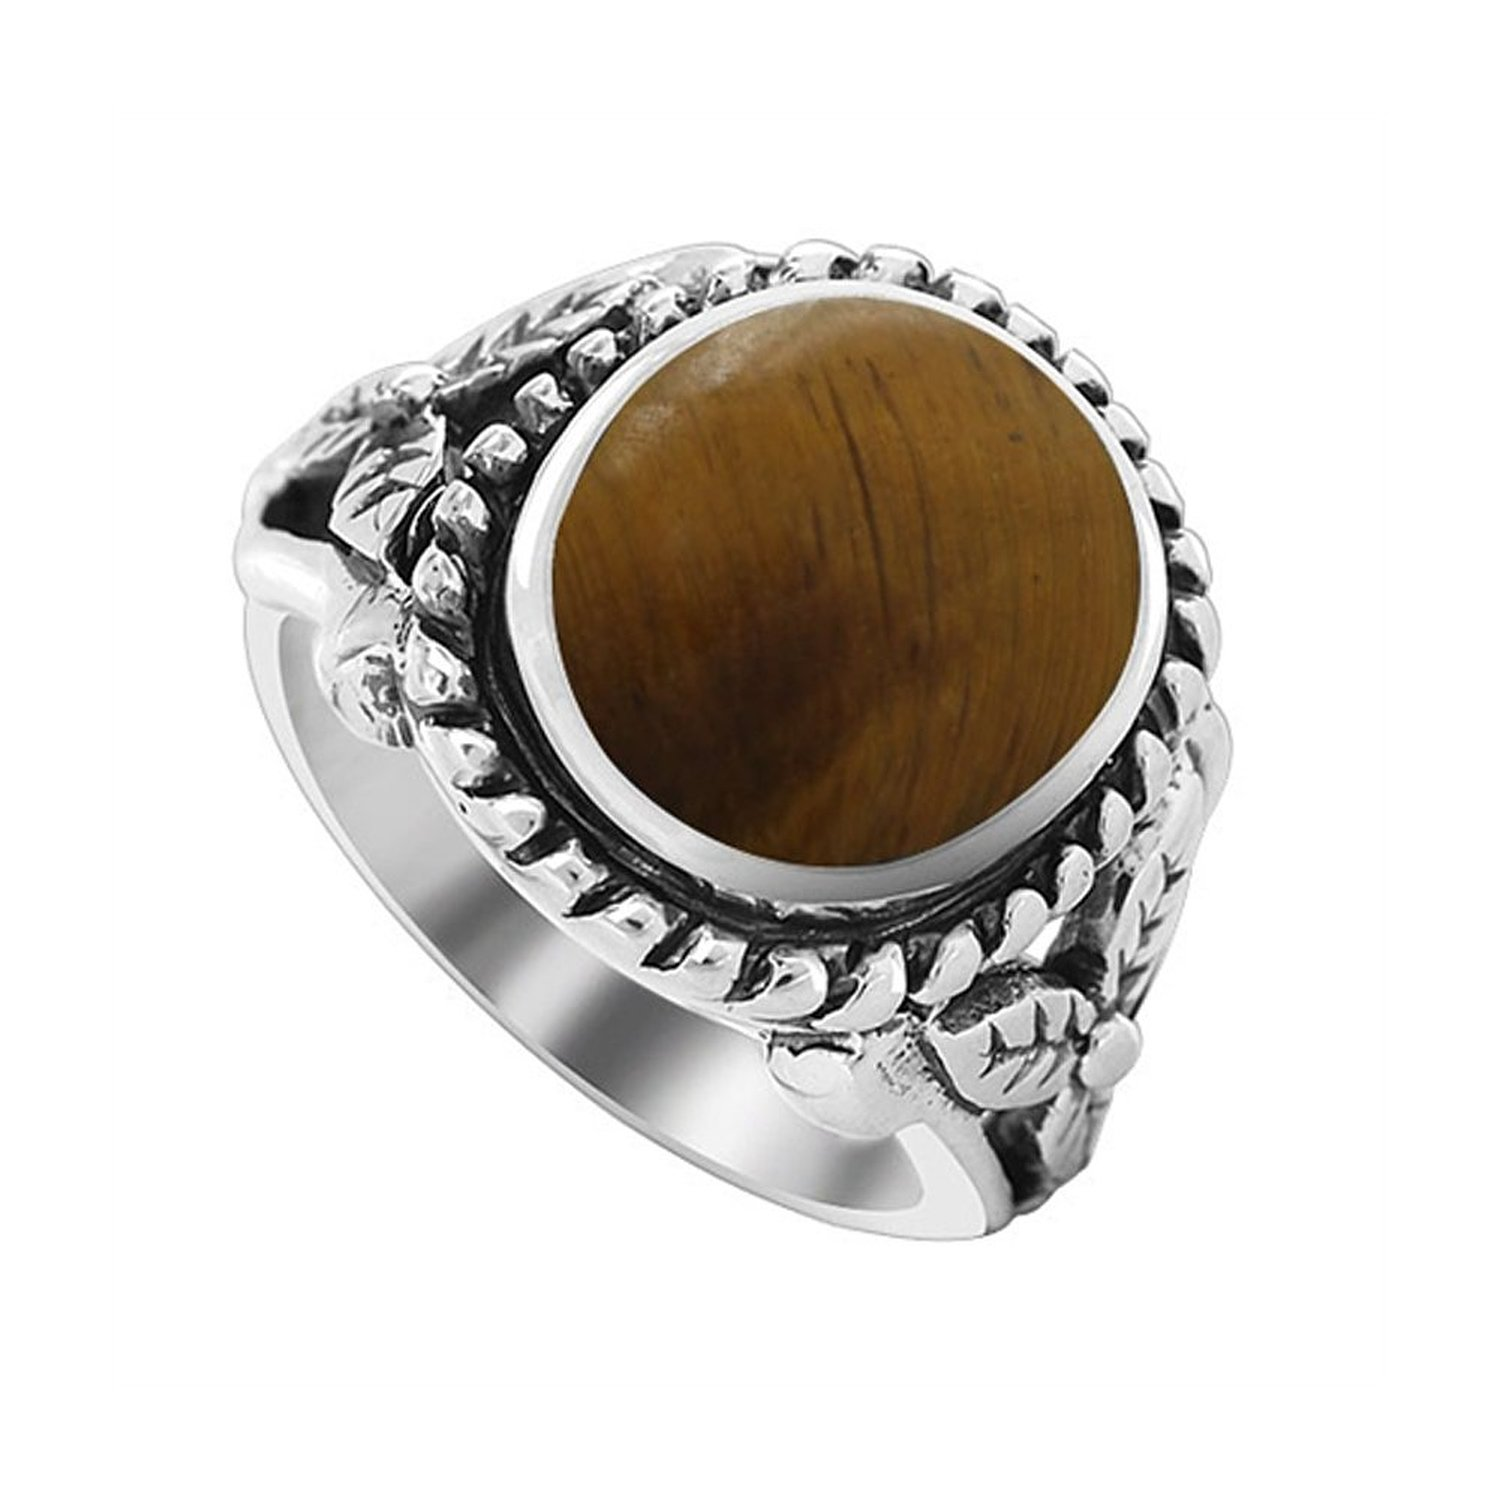 tigers ring tiger product eye presley rings elvis jewellery